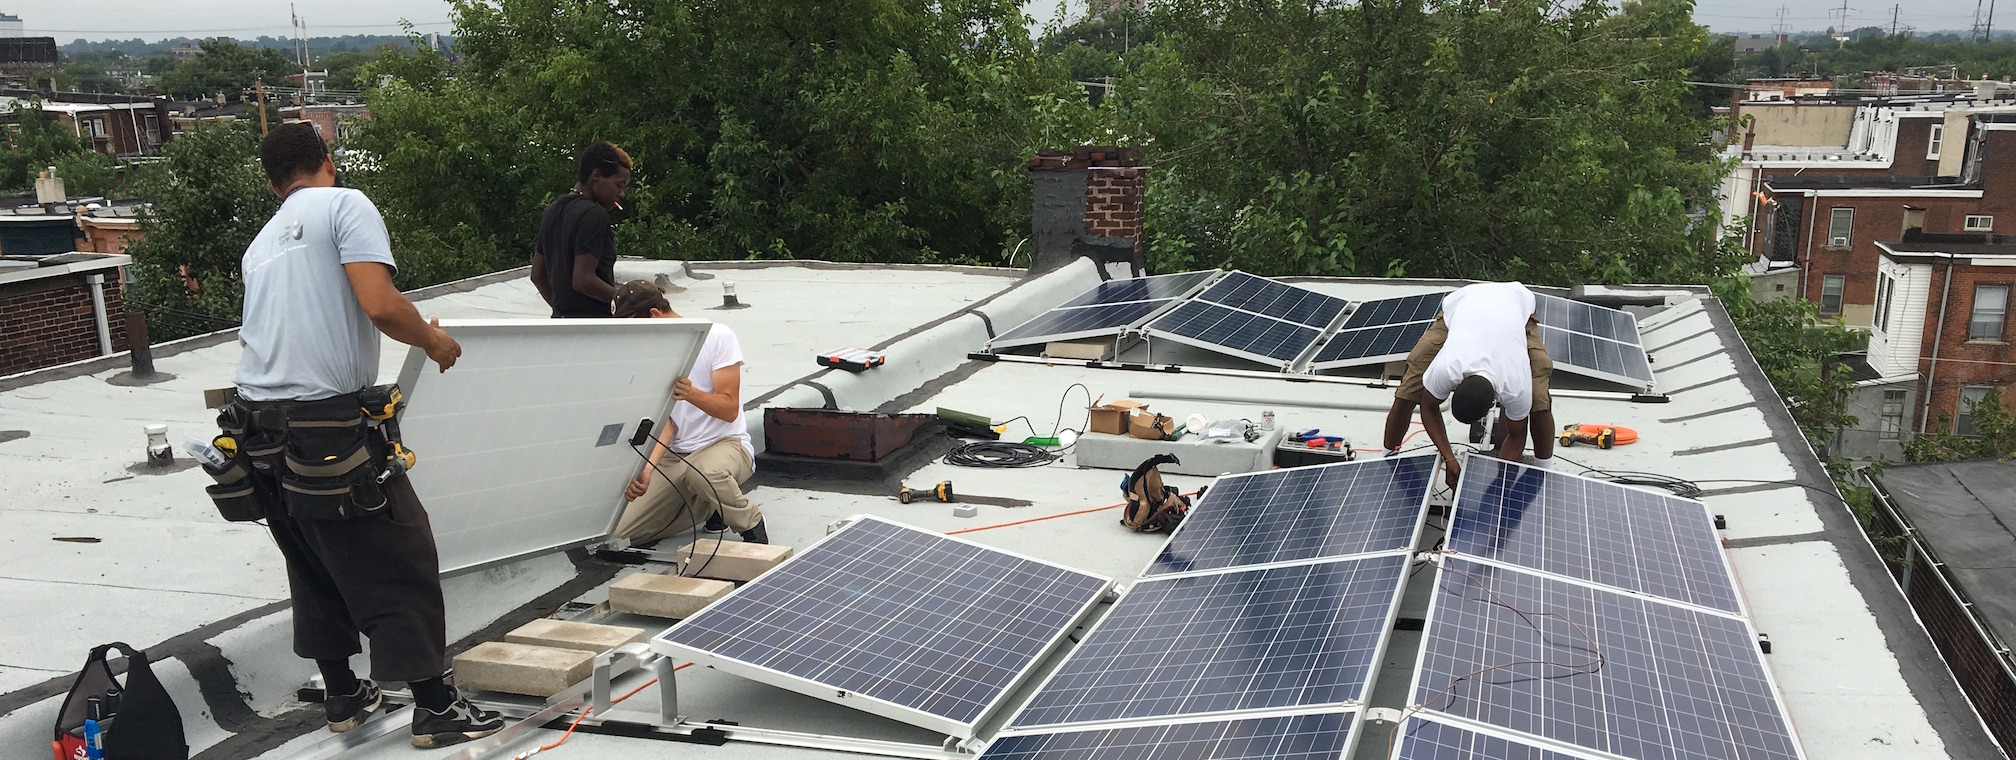 Solar installation on Serenity House